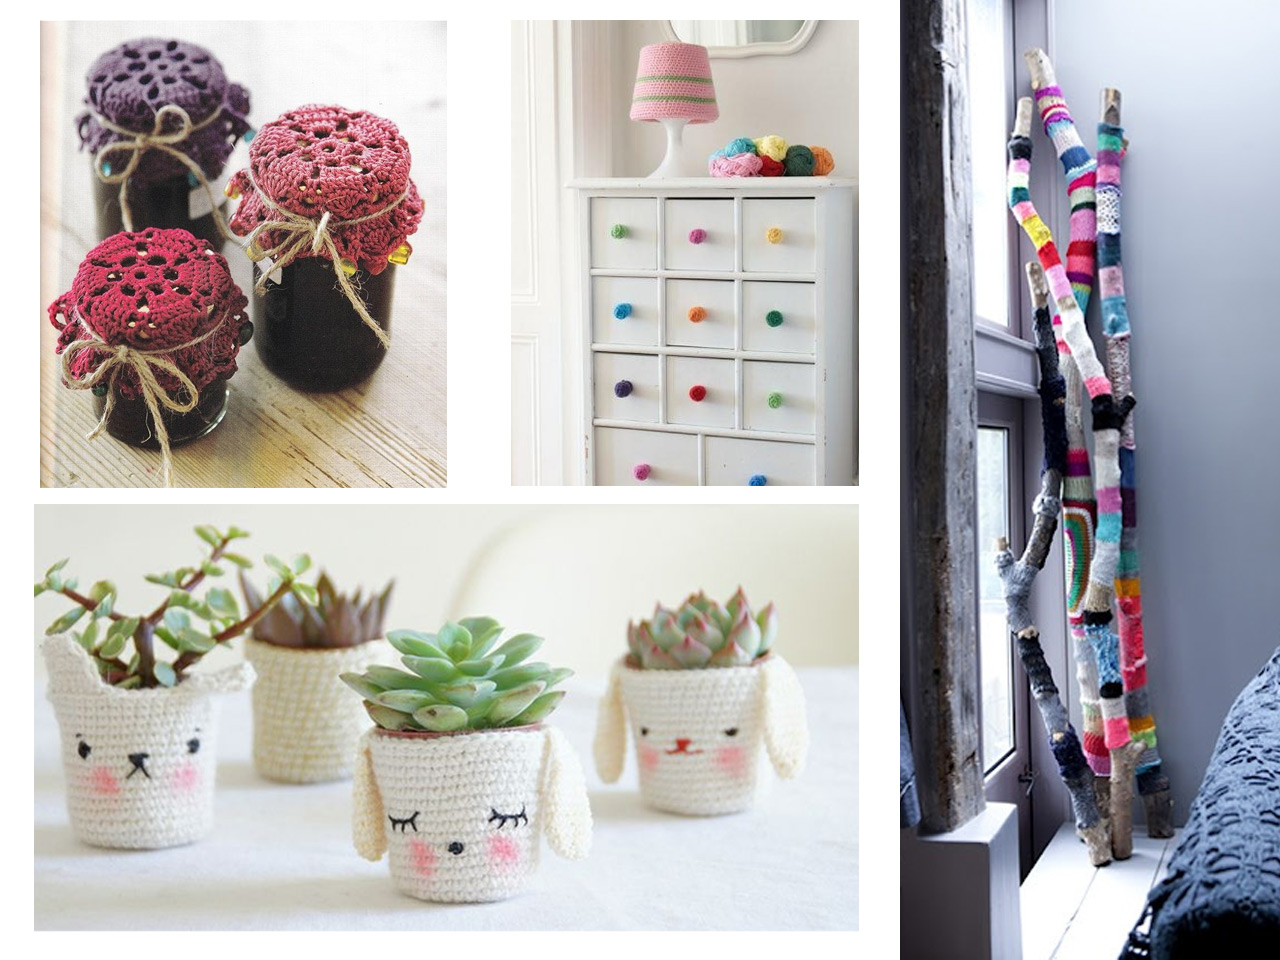 10 propuestas para decorar tu casa con crochet - Objetos para decorar un salon ...